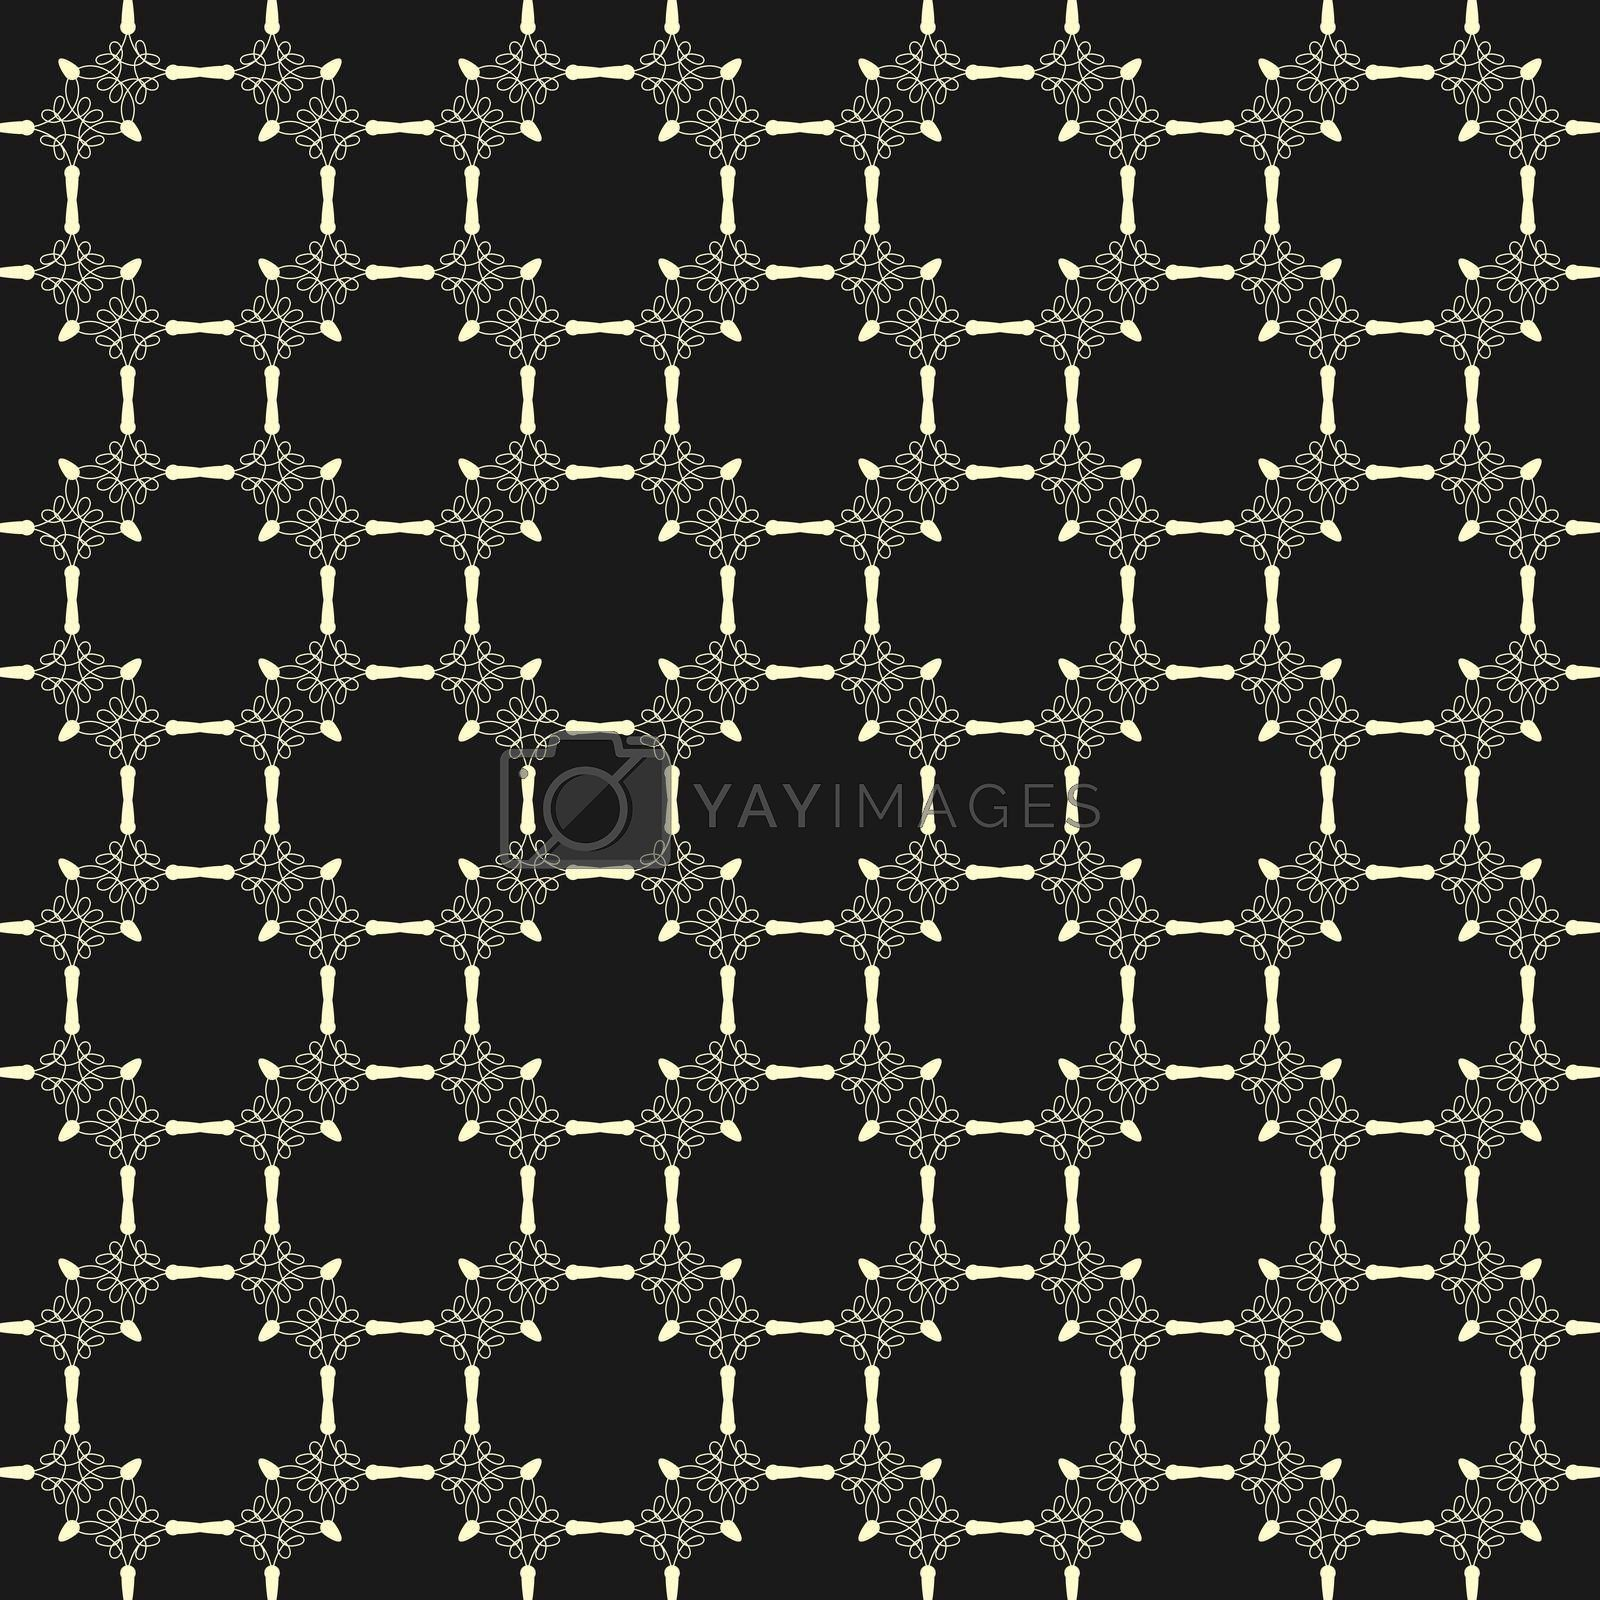 Royalty free image of Seamless openwork pattern for textures, textiles, packaging and simple backgrounds by Grommik